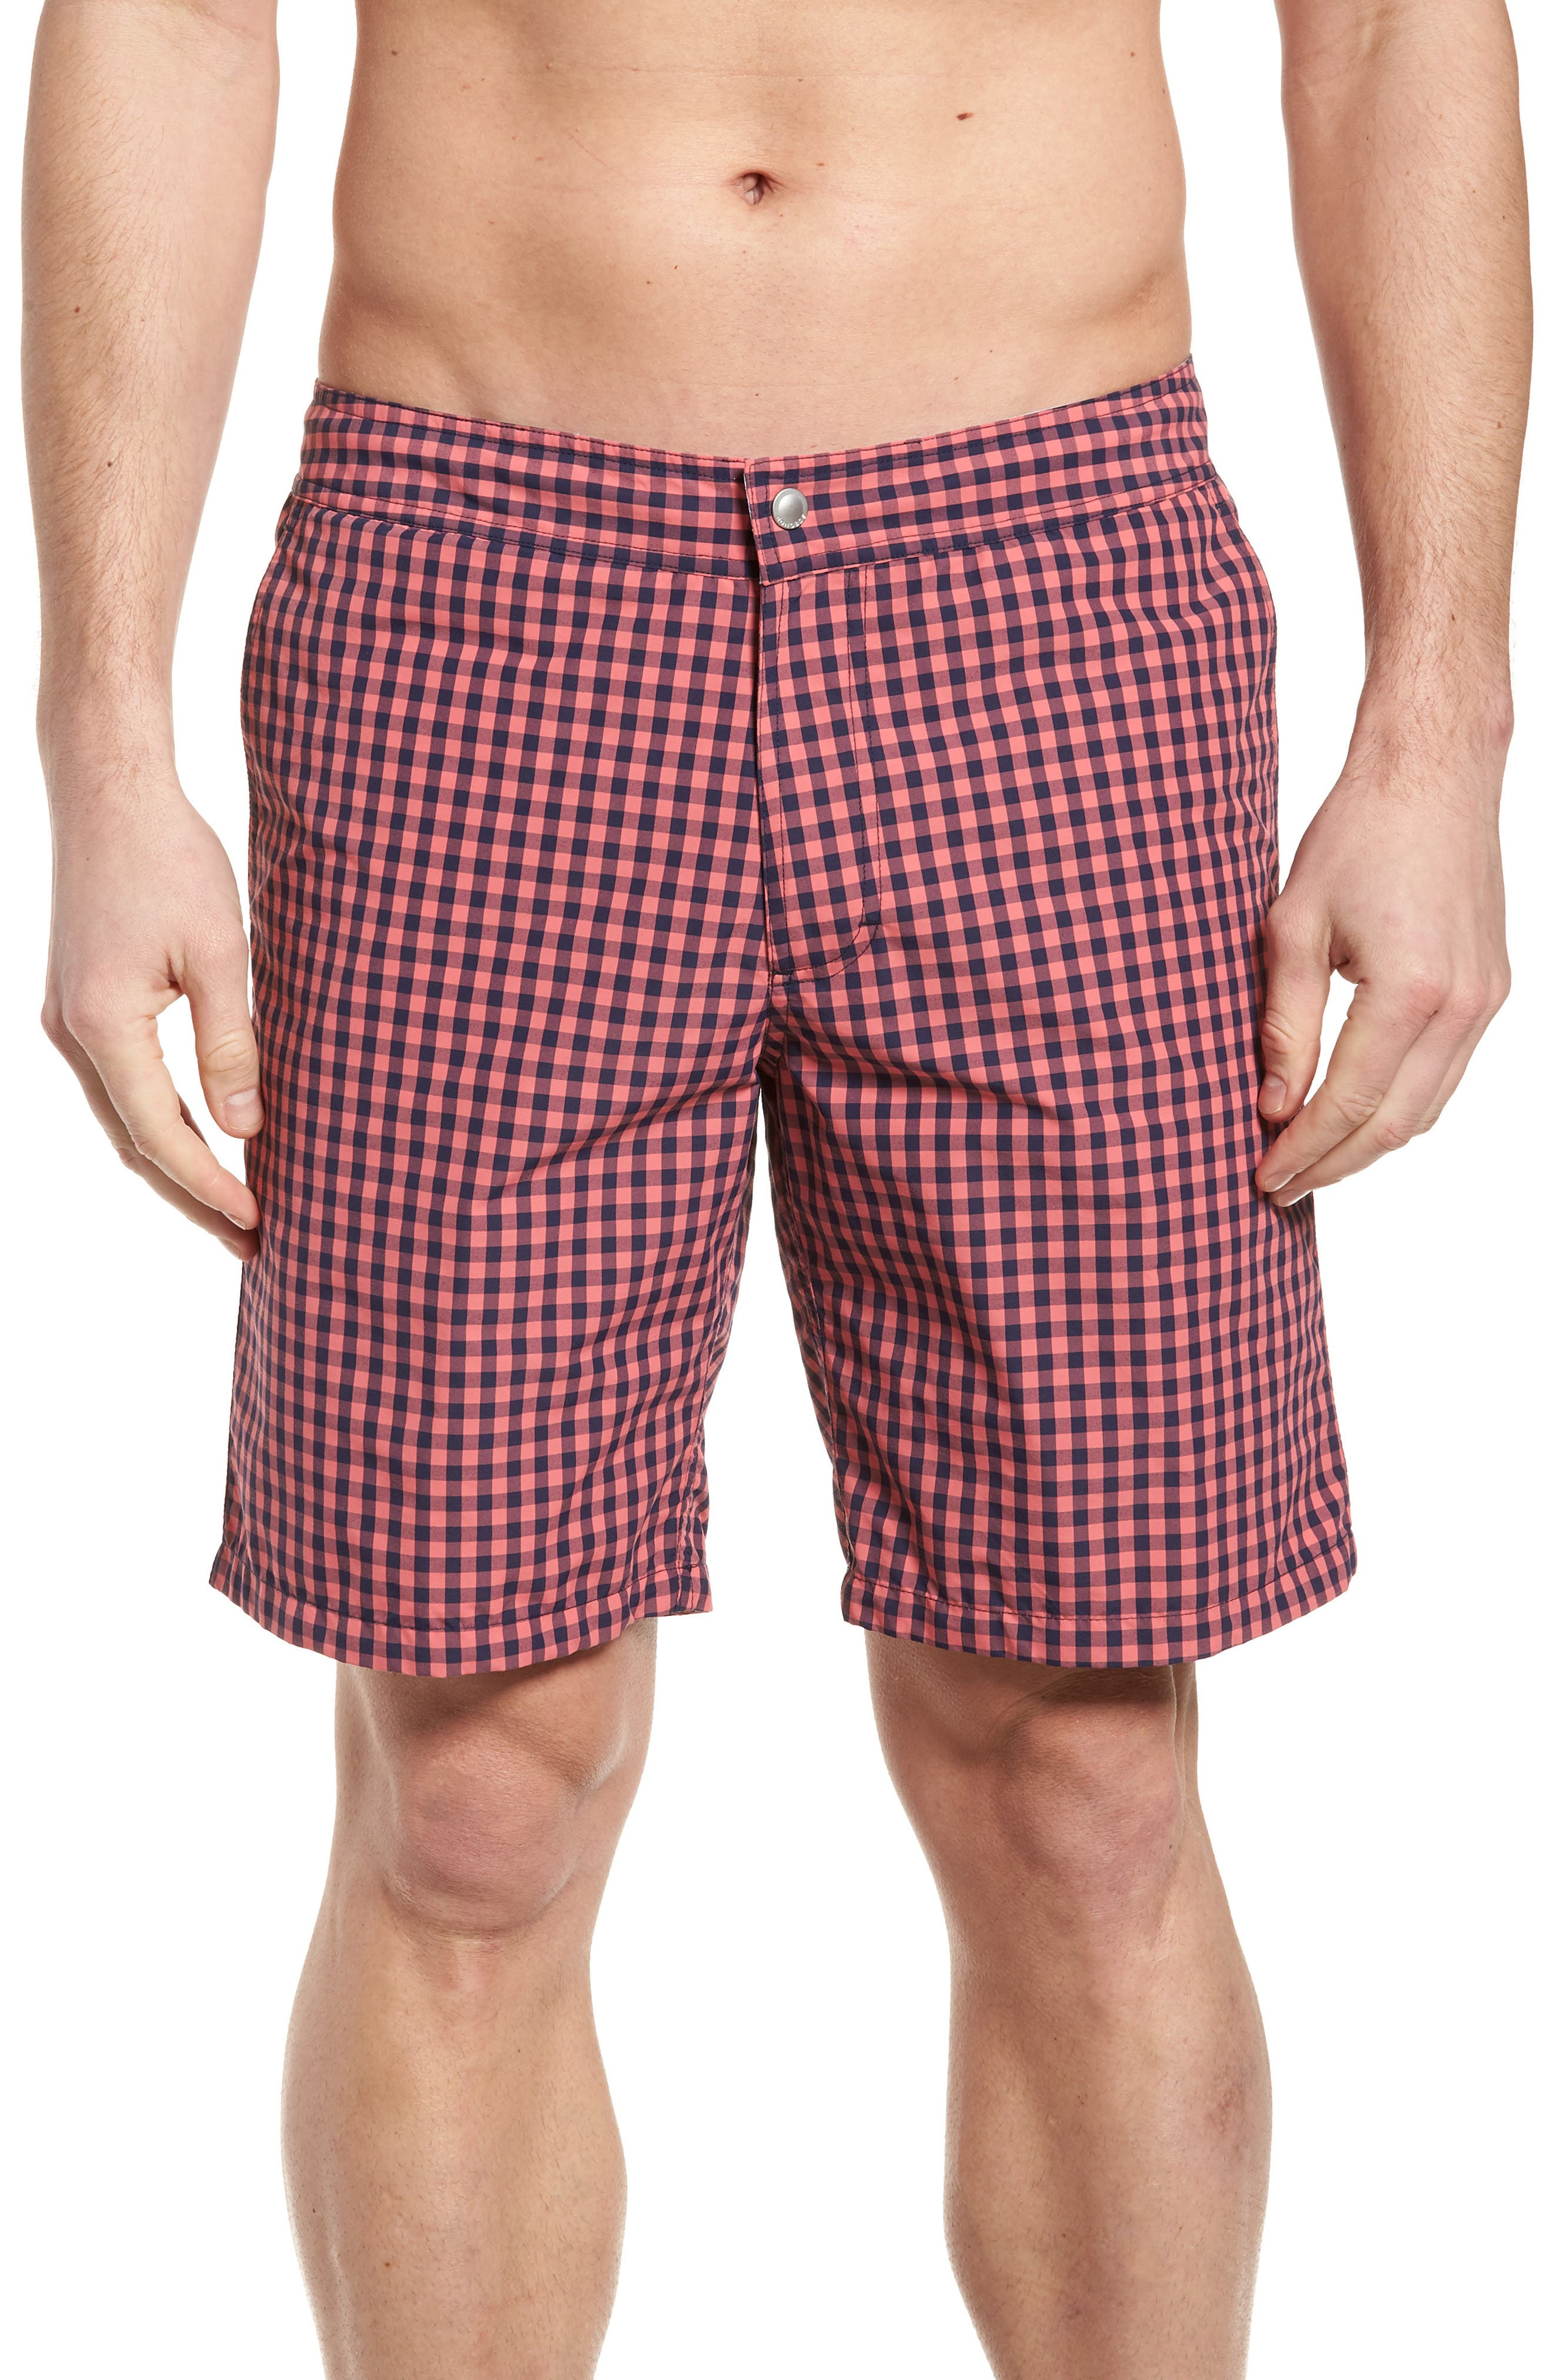 Gingham 9-Inch Swim Trunks,                             Main thumbnail 1, color,                             Gulfstream Gingham Blue/ Pink